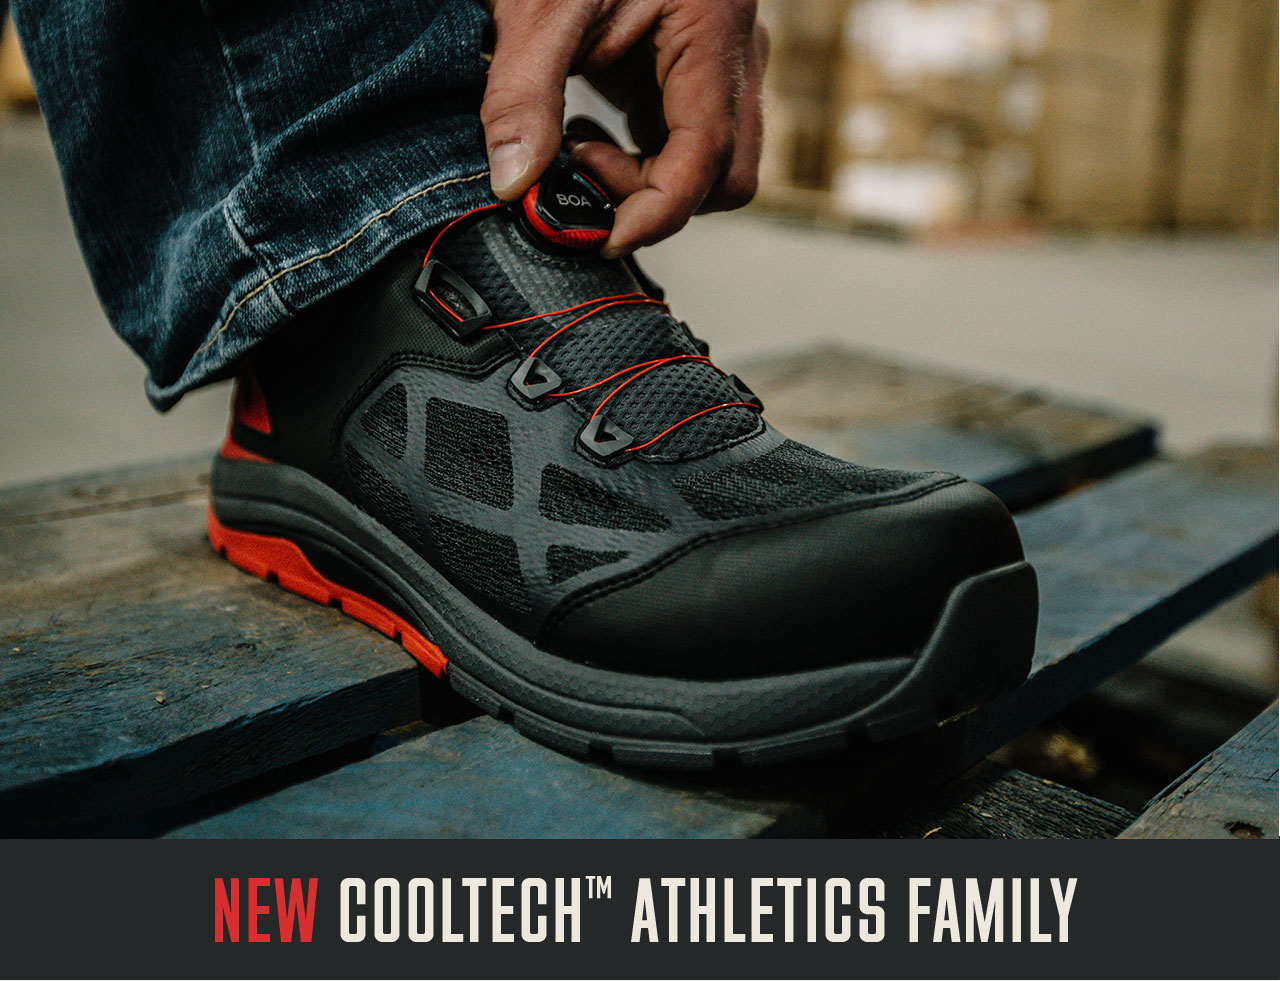 New cooltech™ athletics Family